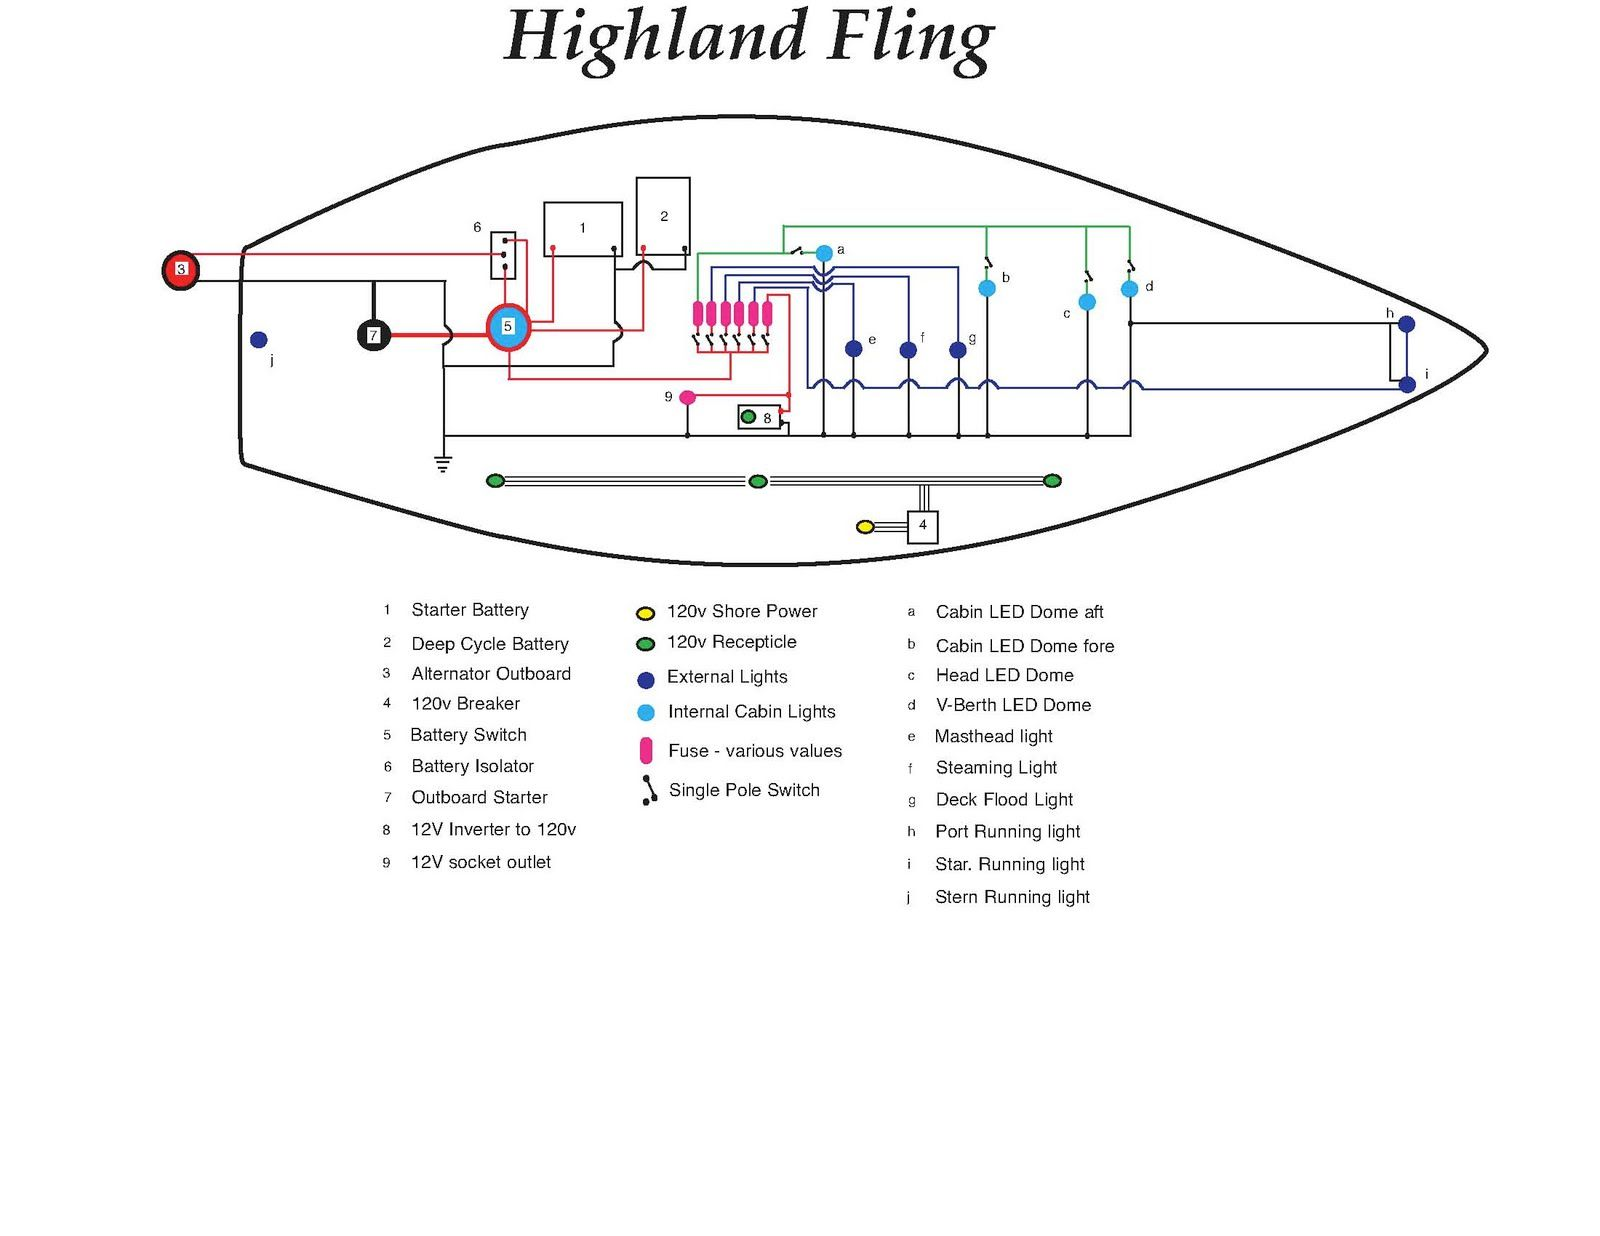 Highland Fling, my Grampian 26 Sailboat - Wiring Diagram | Sailboats ...